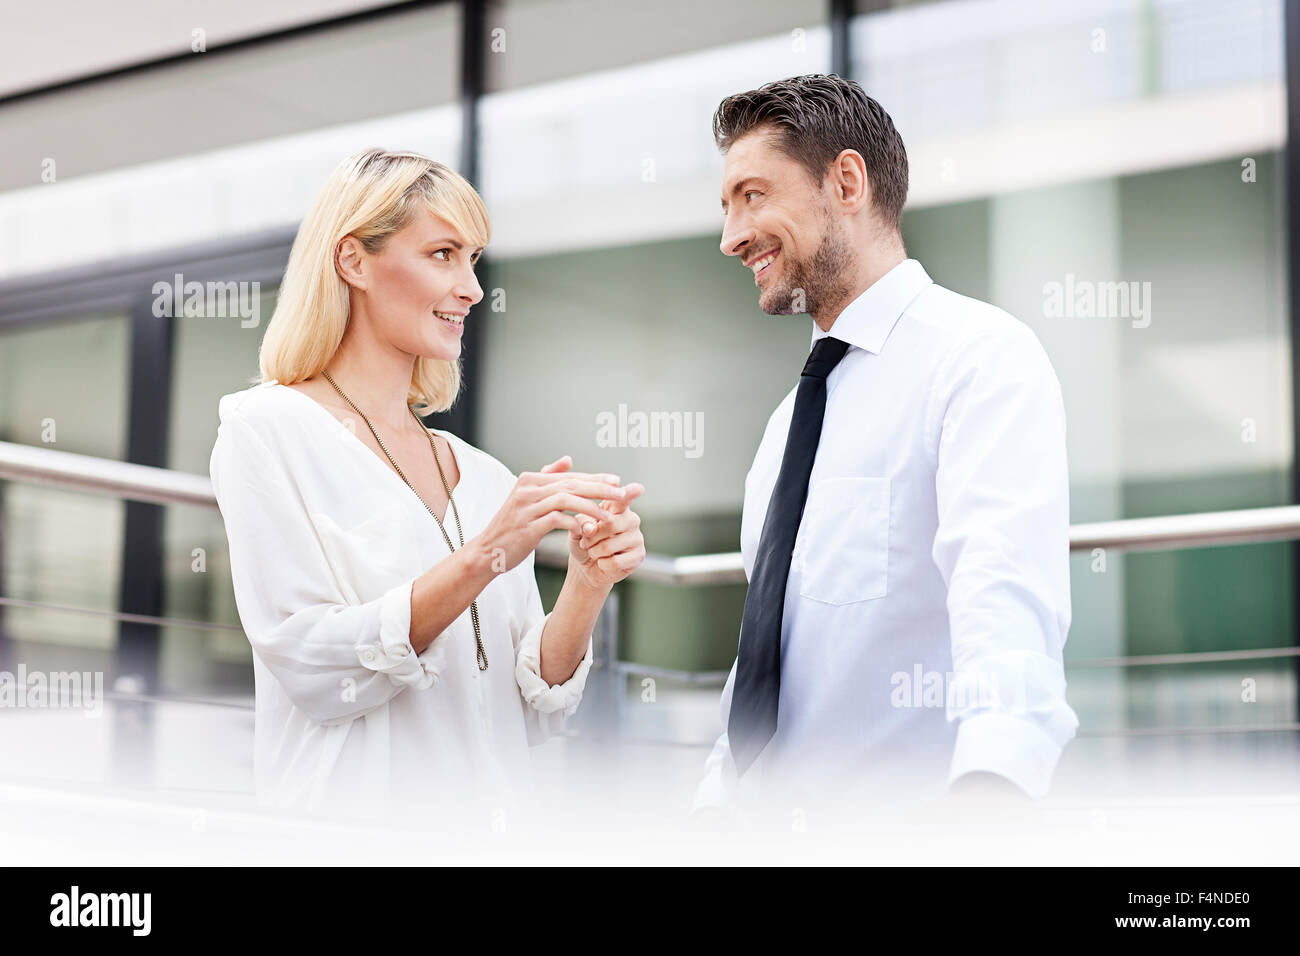 Businesswoman explaning something to her business partner - Stock Image